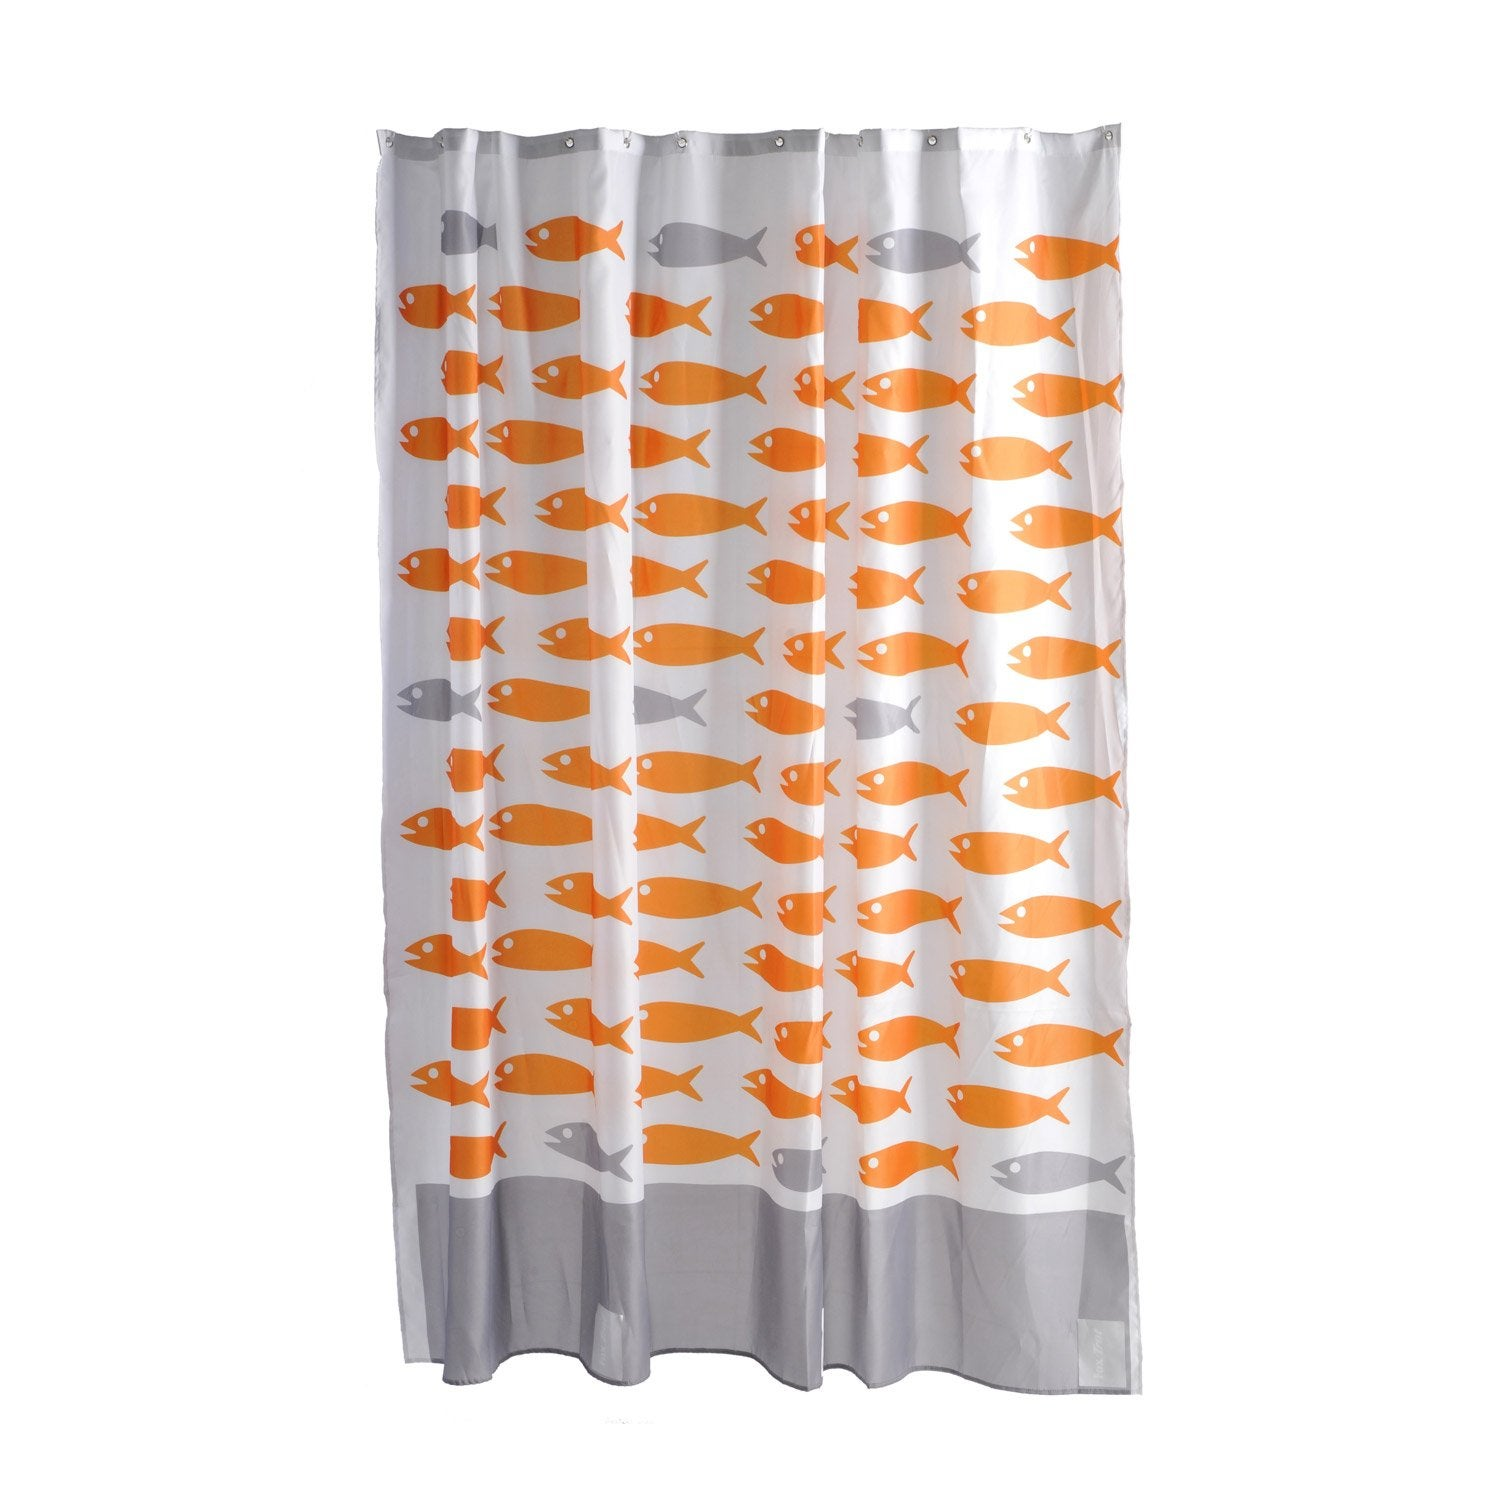 rideau de douche en tissu luna fish sensea orange 180 x 200 cm leroy merlin. Black Bedroom Furniture Sets. Home Design Ideas